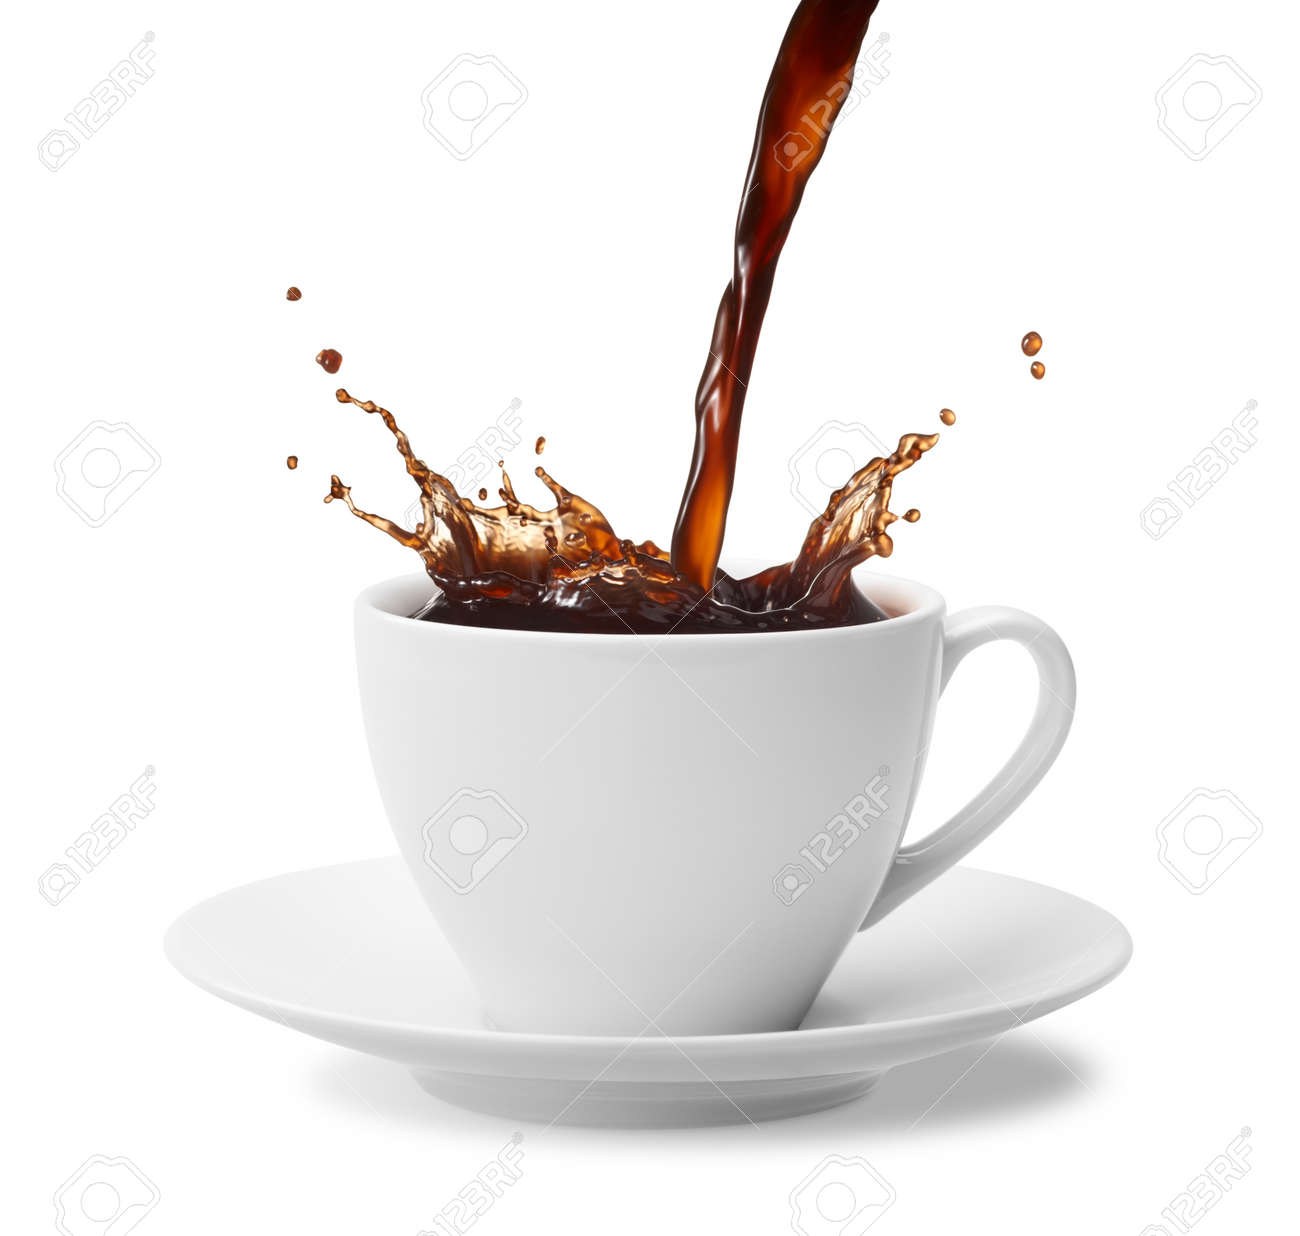 Image result for pouring coffee